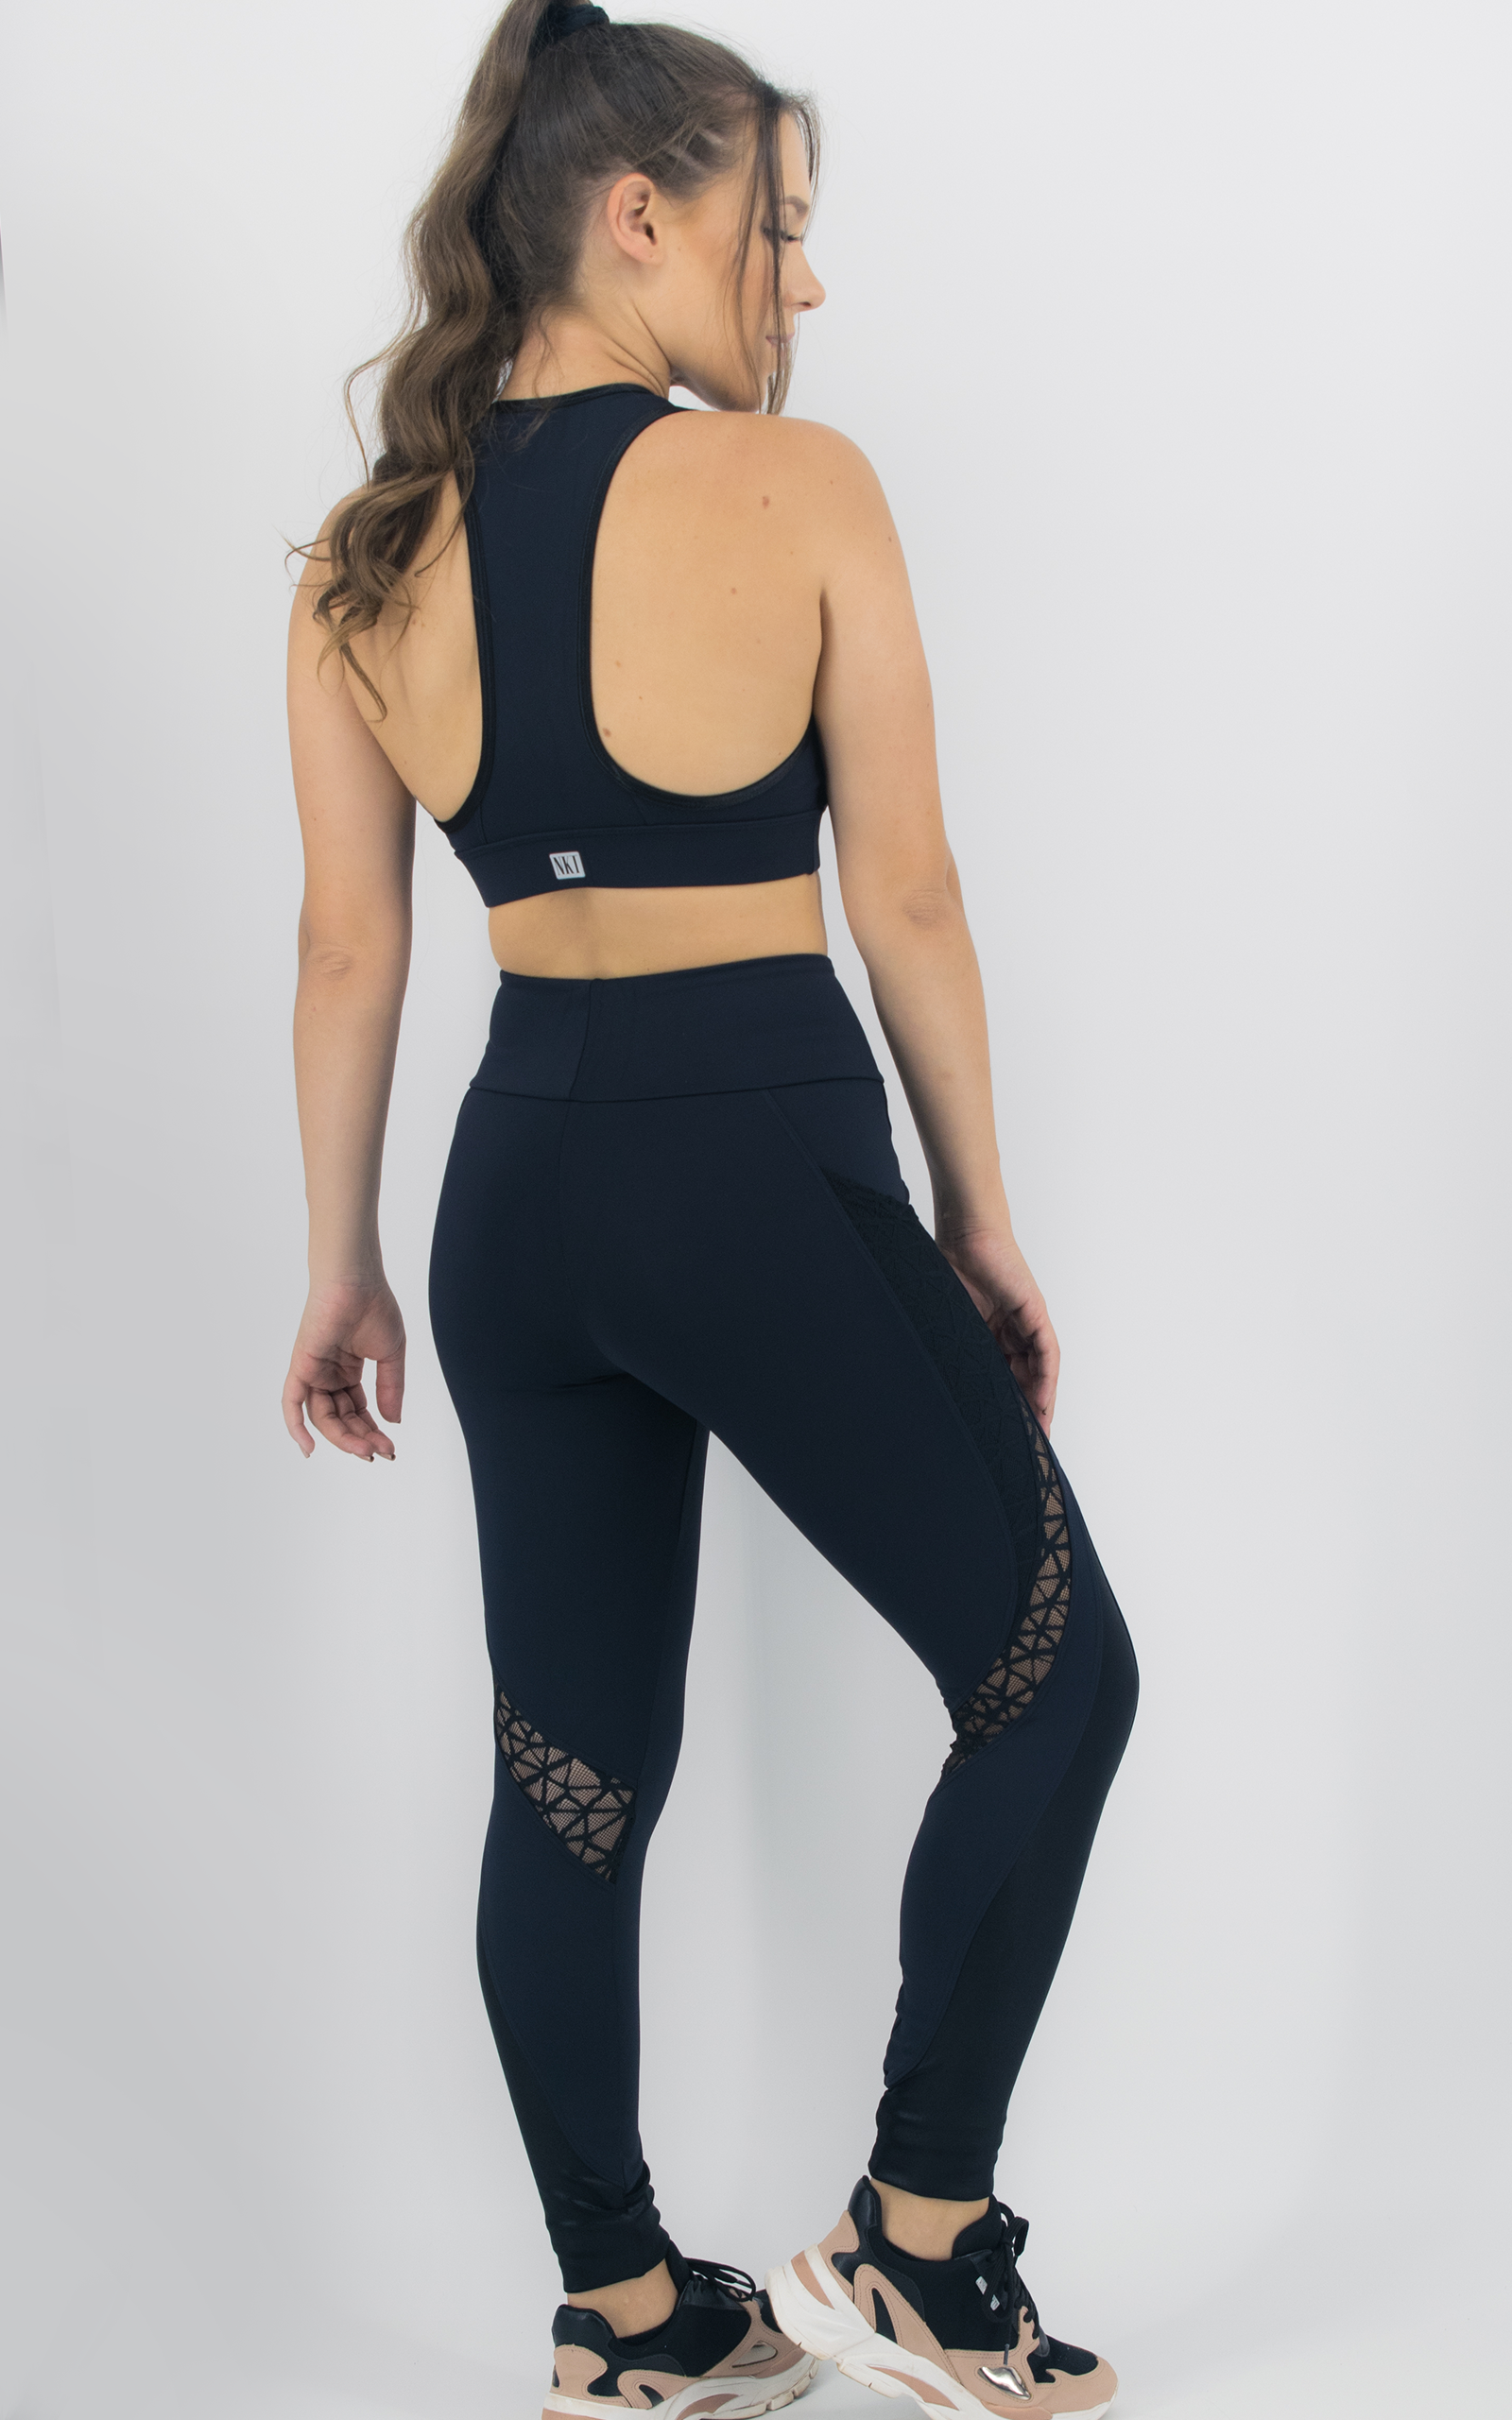 Top Expression Preto, Coleção Move Your Body - NKT Fitwear Moda Fitness